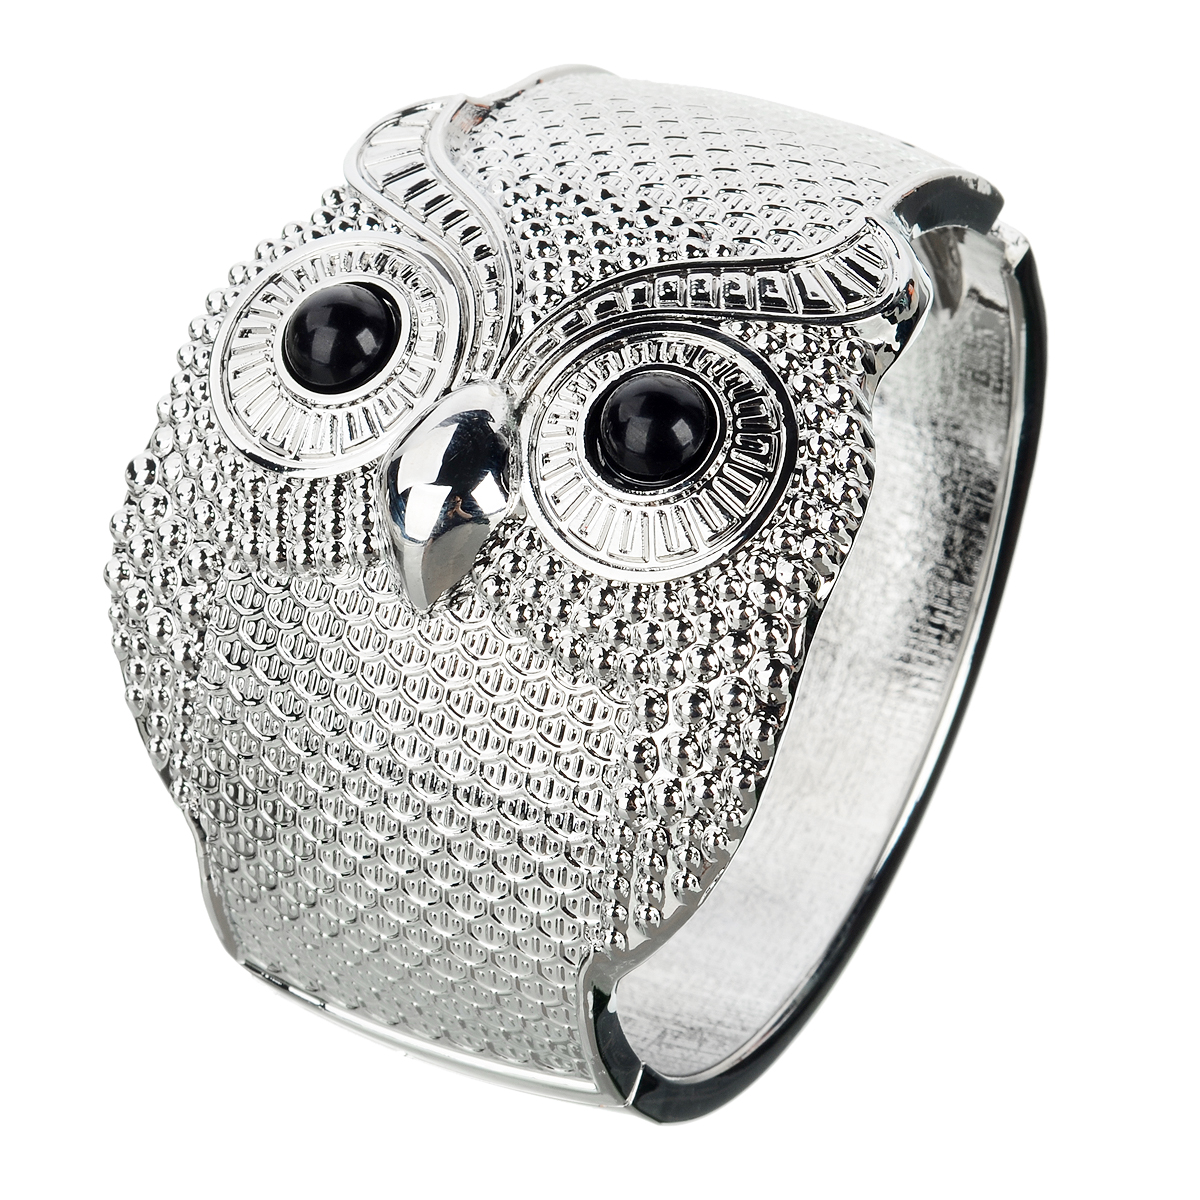 Unisex Novel Owl Modelling Bangle - Prata Branco + Preto